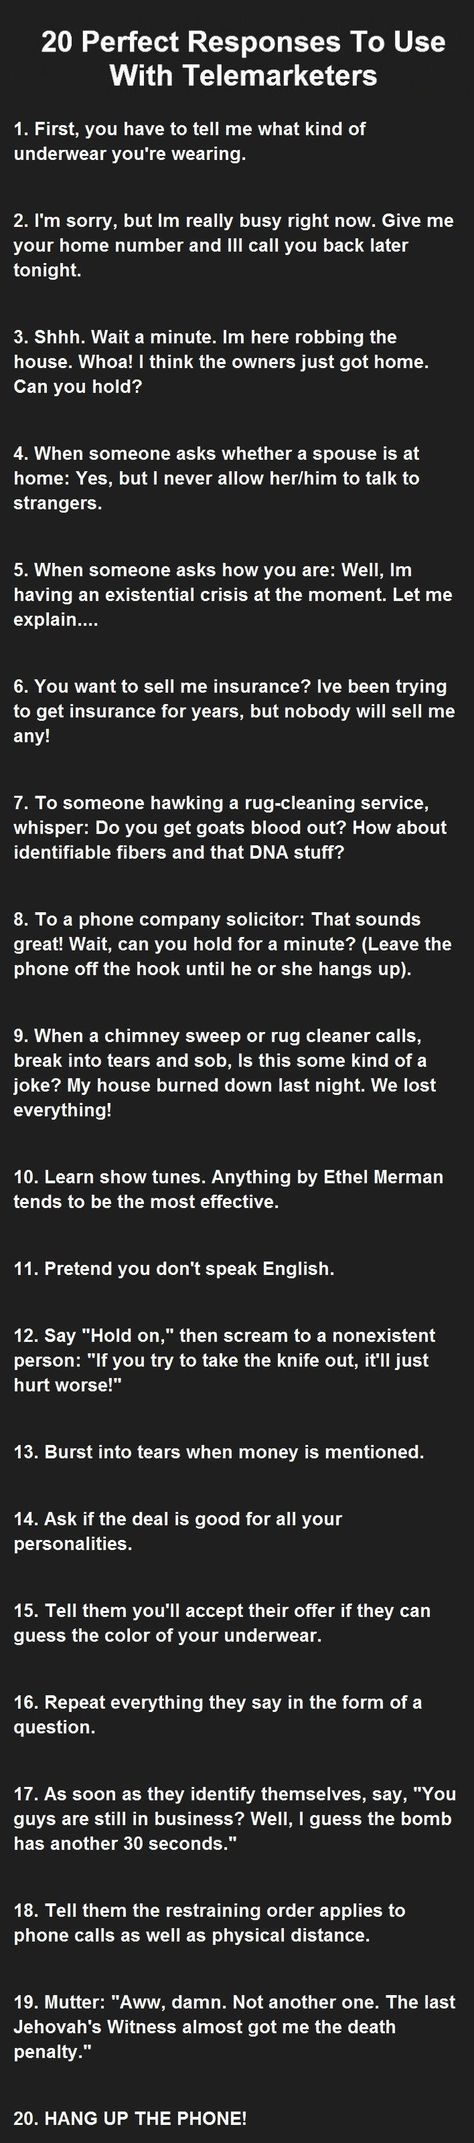 20 Perfect Responses To Use With Telemarketers. funny jokes story lol funny quote funny quotes funny sayings joke hilarious humor prank stories funny jokes pranks